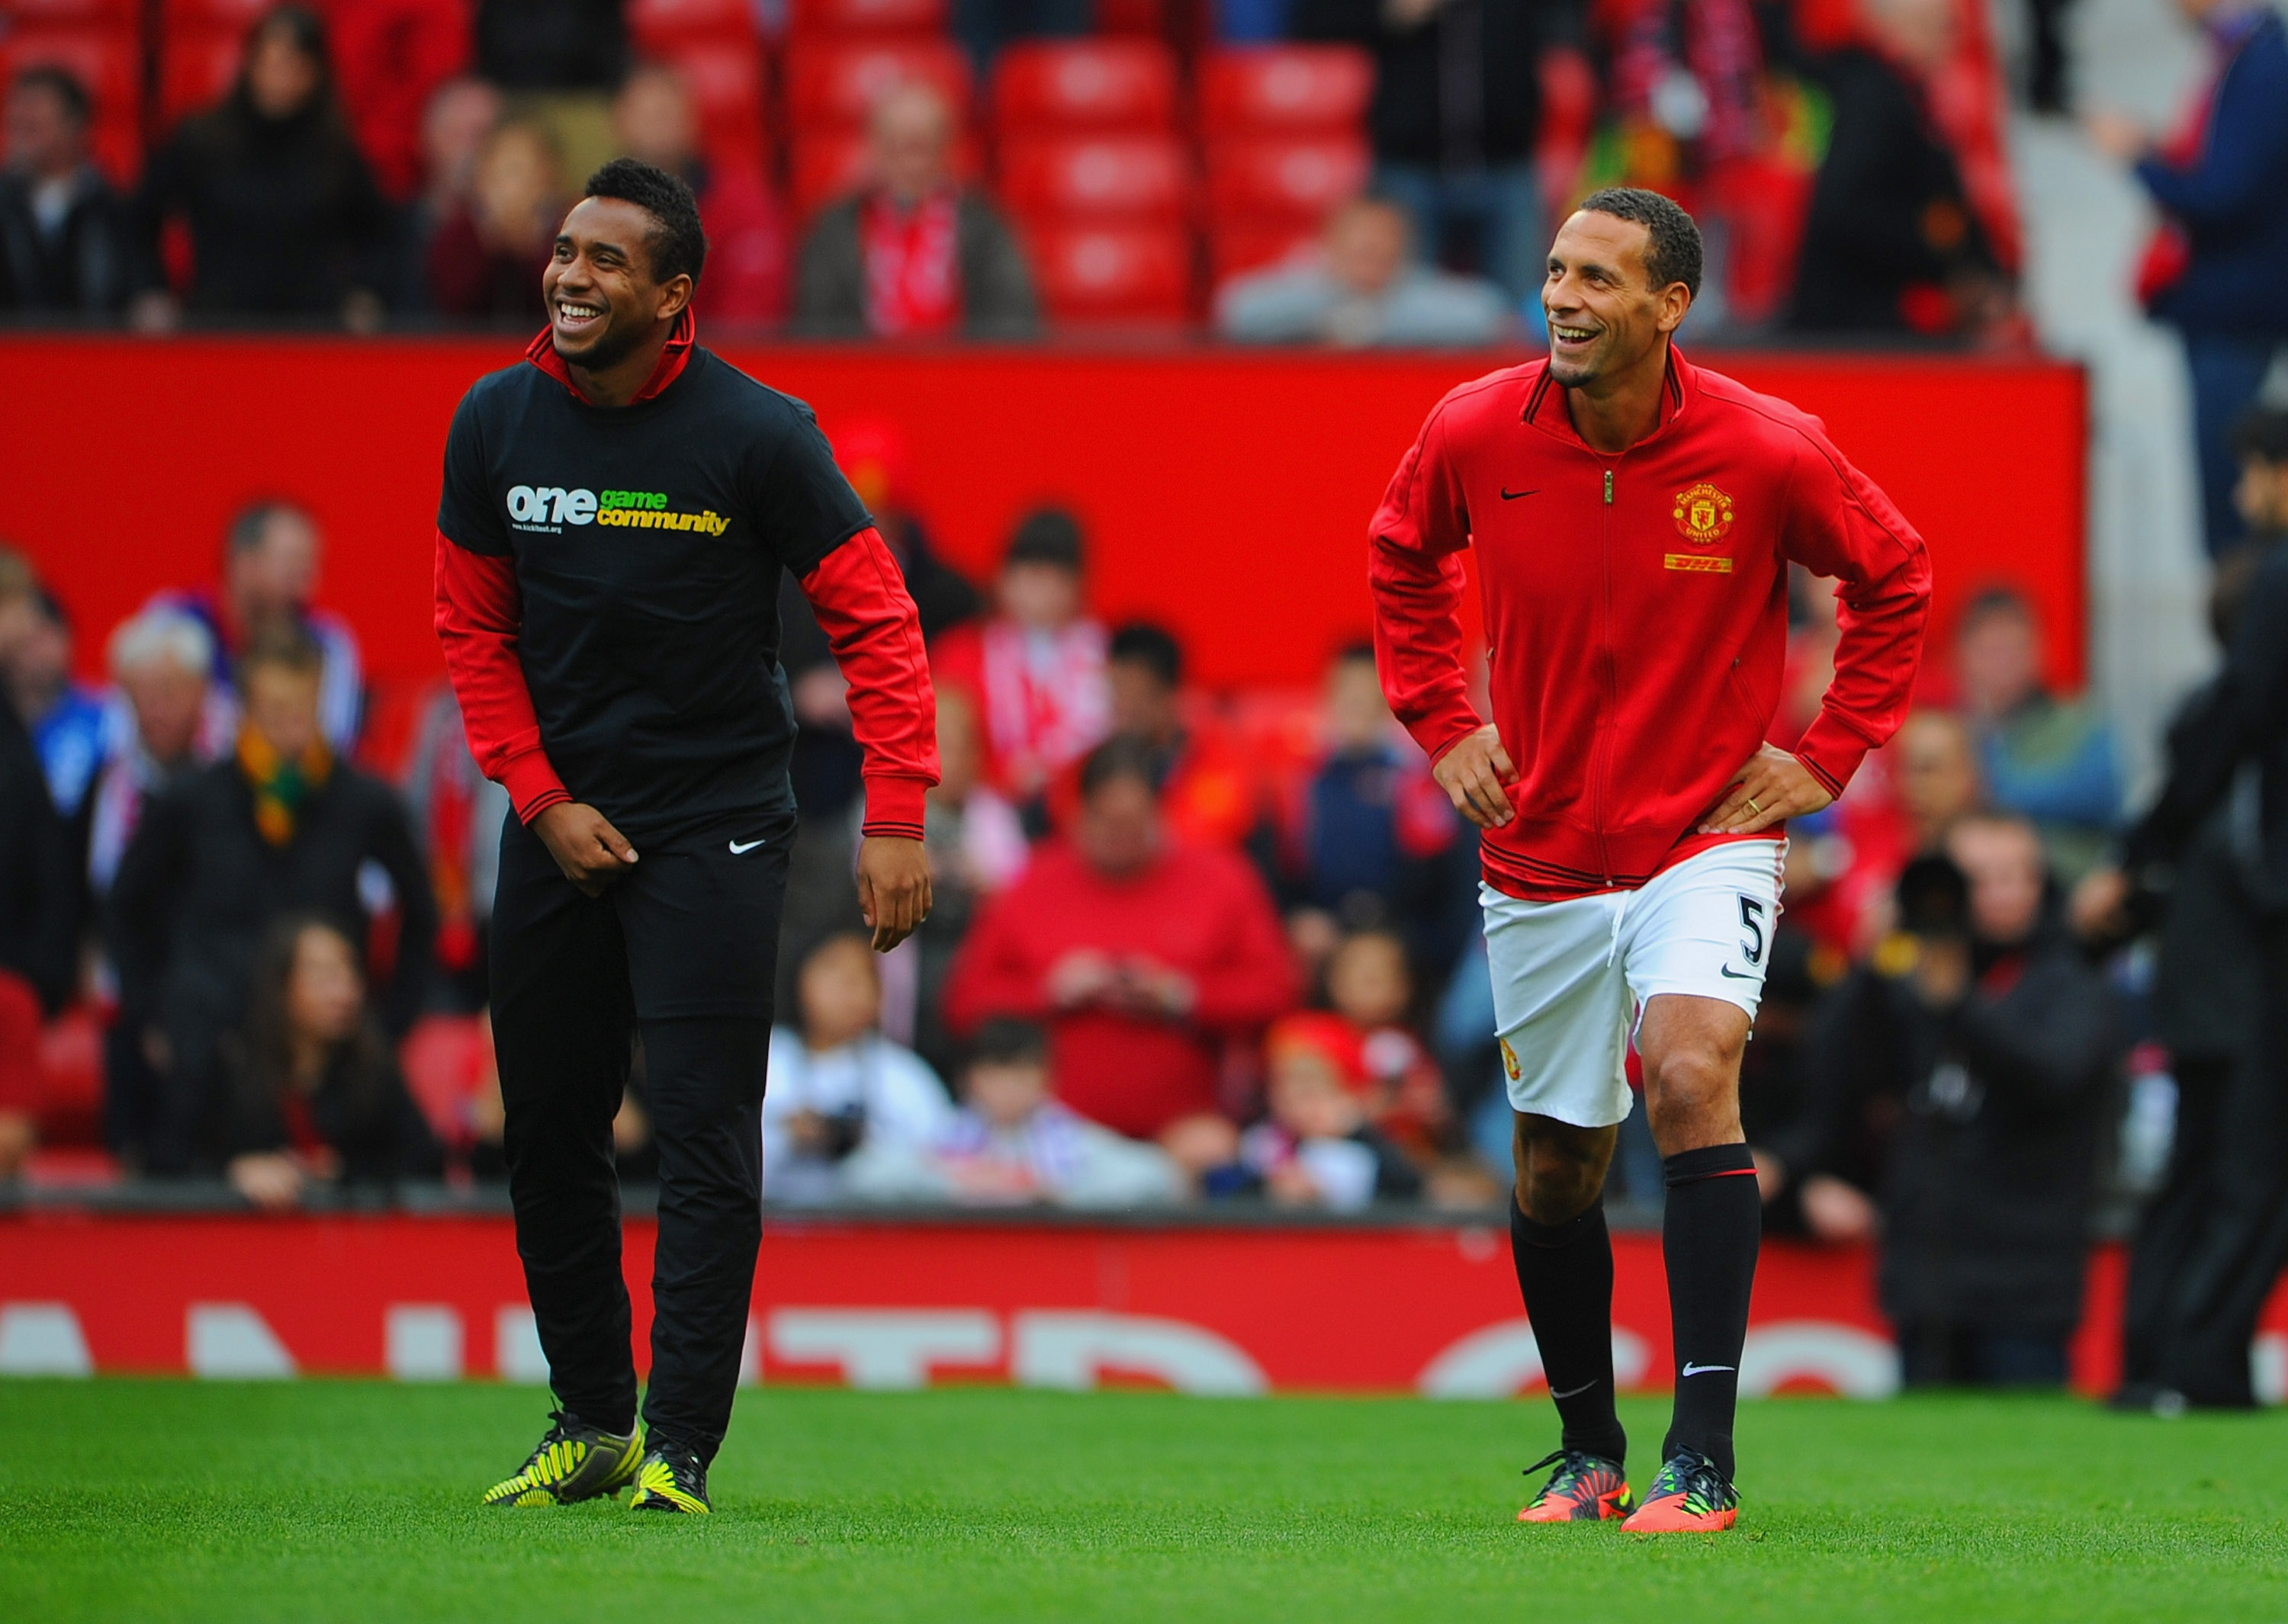 Anderson wears a T-shirt for the Kick It Out campaign. Rio Ferdinand, right, did now wear the shirt. (Getty Images)